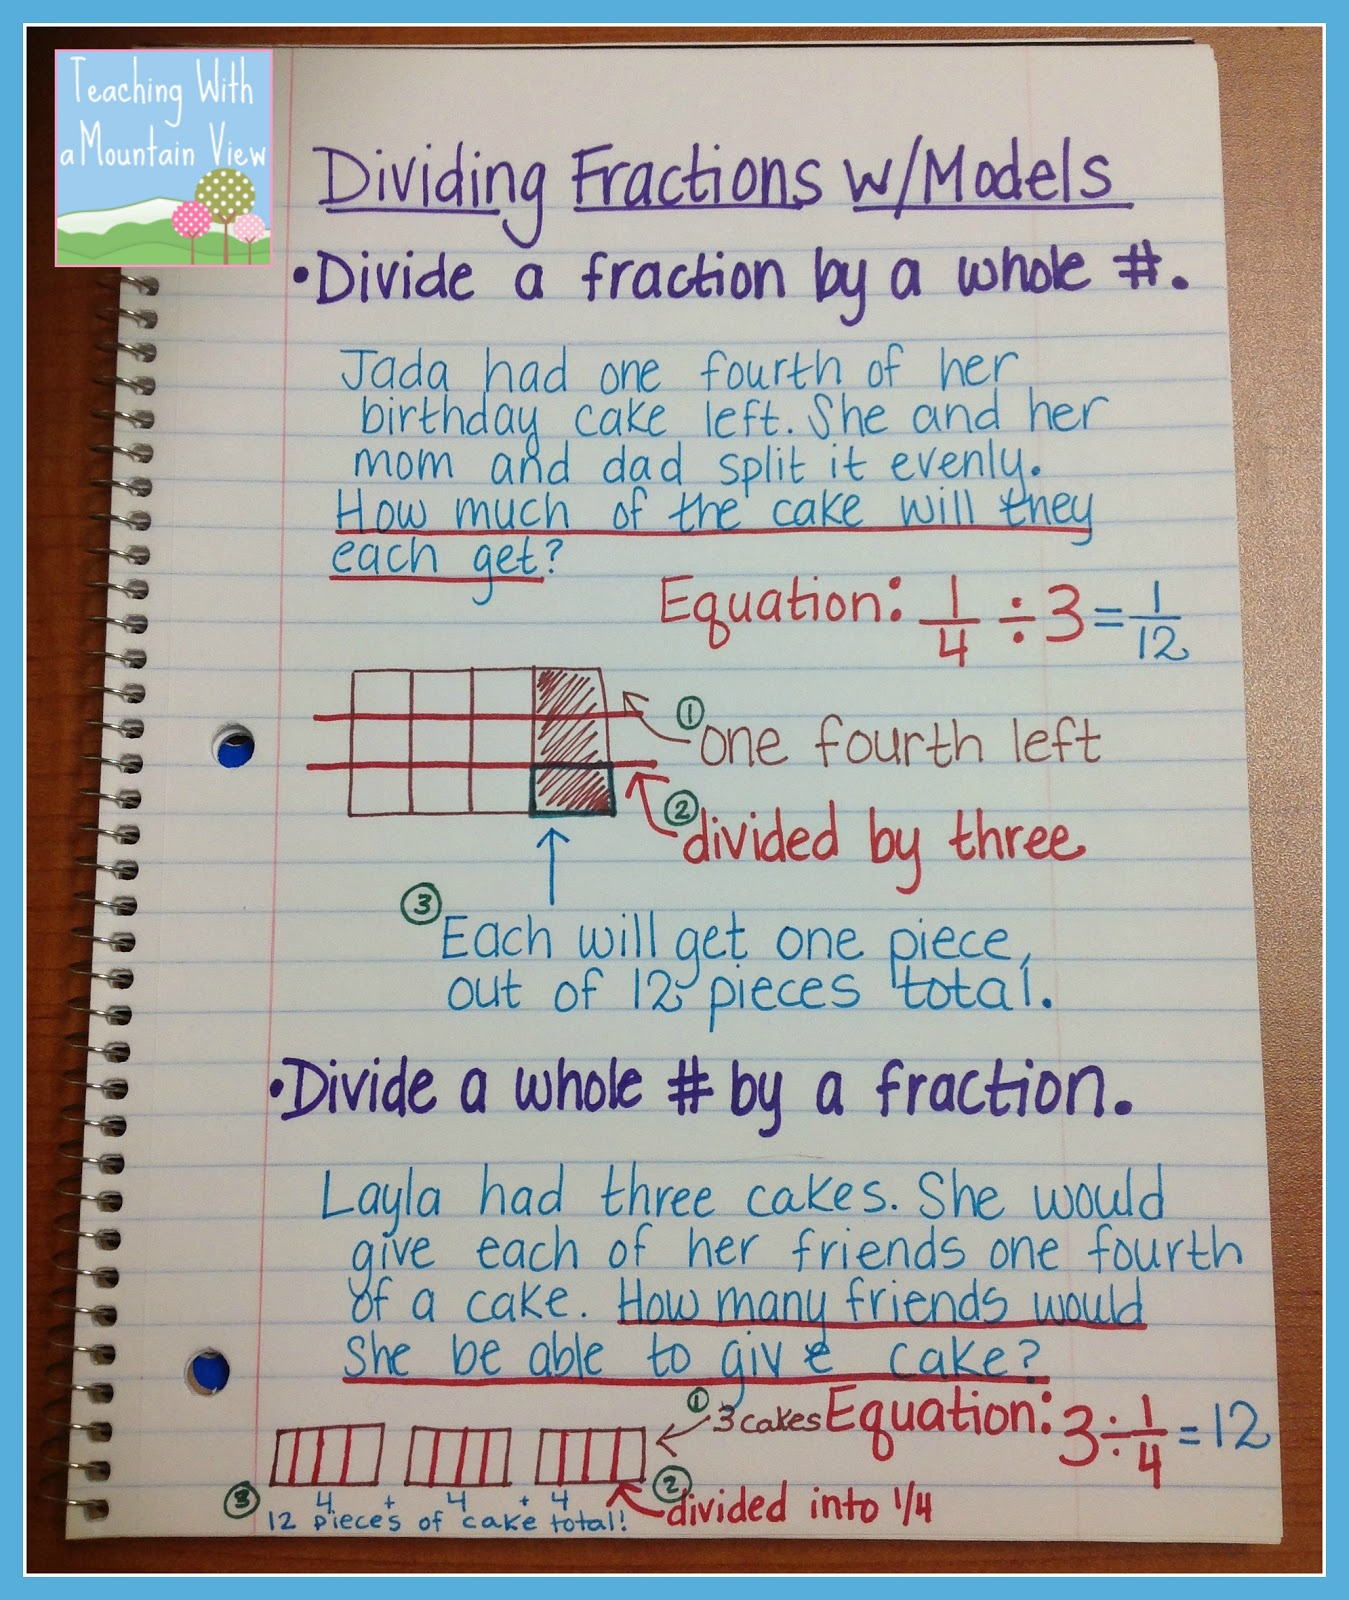 image about Dividing Fractions Games Printable named Education With a Mountain Watch: Dividing Fractions Anchor